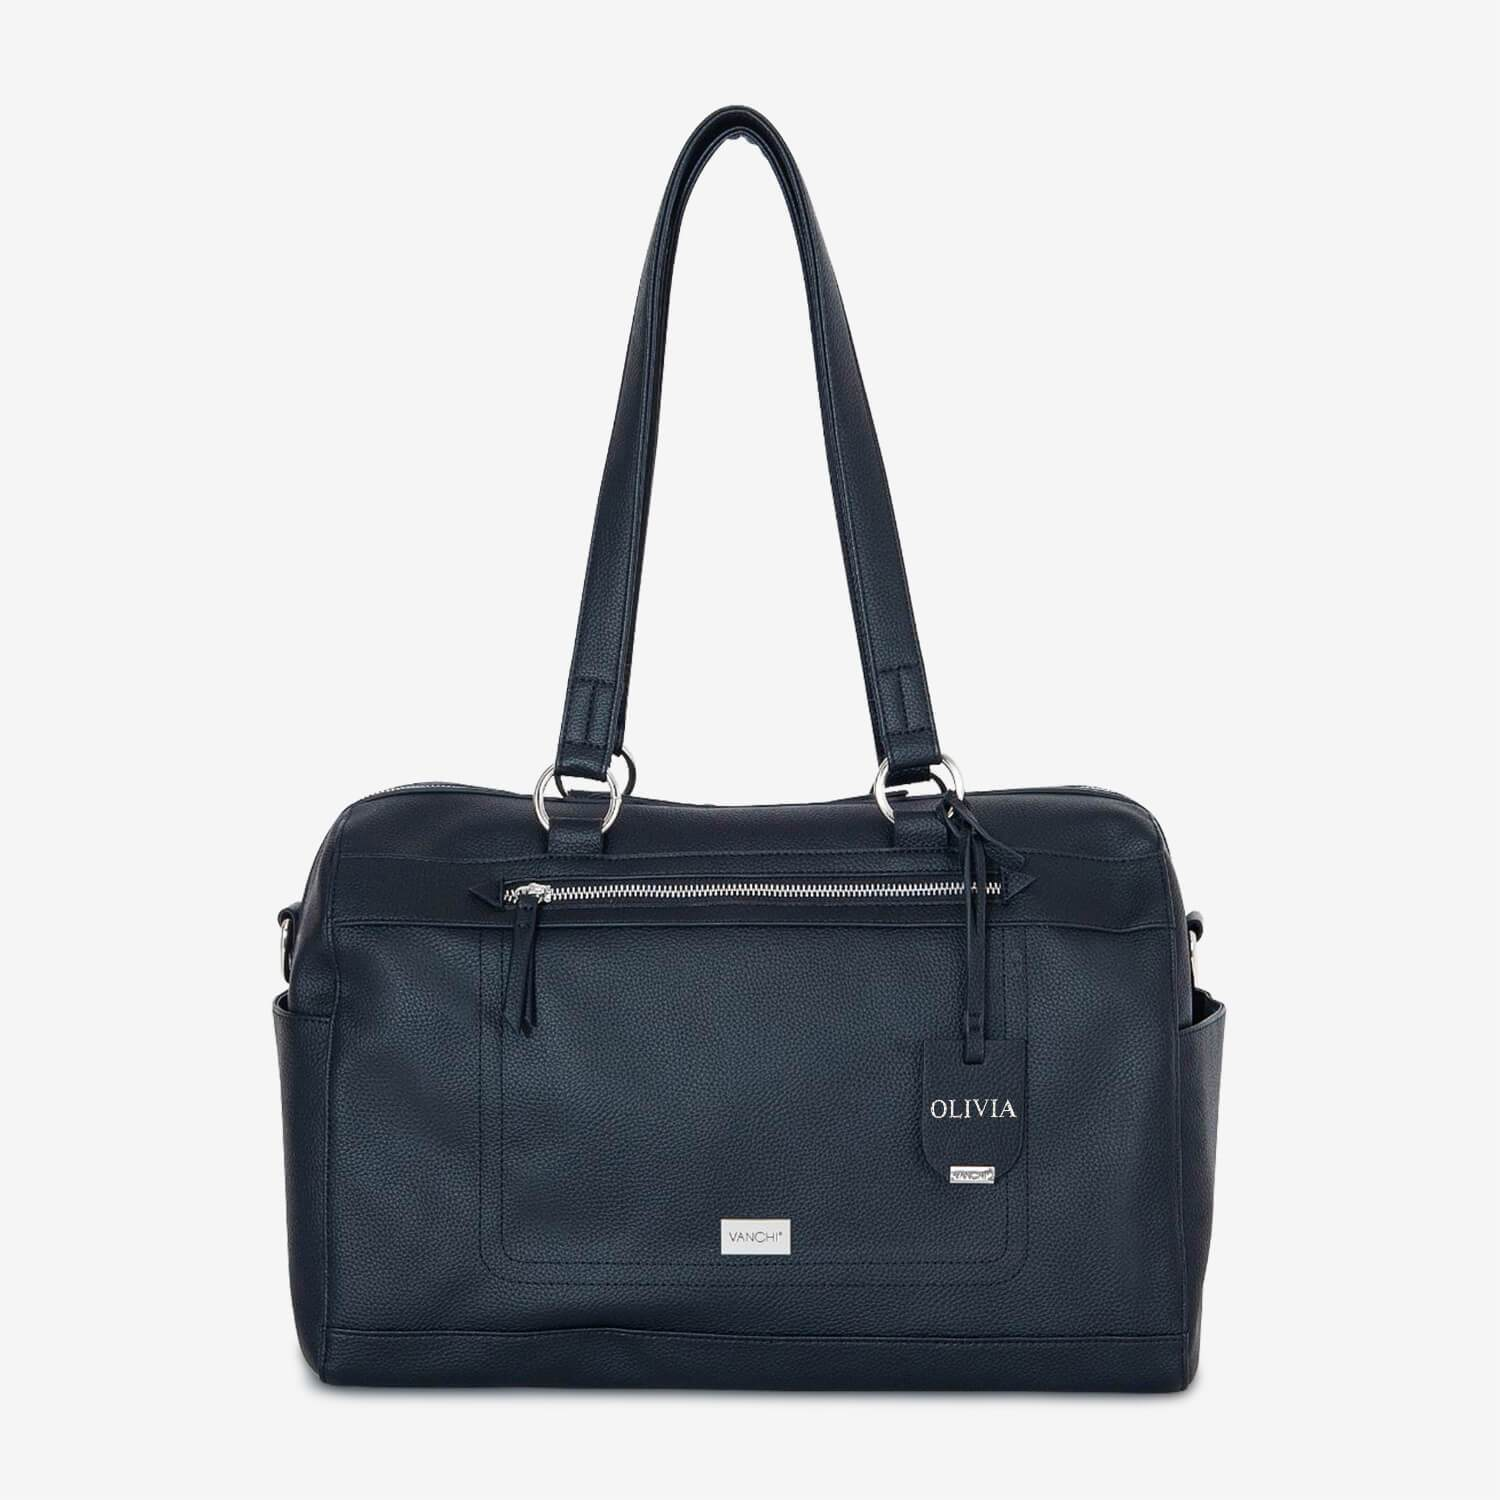 Steffi Carryall (Black)